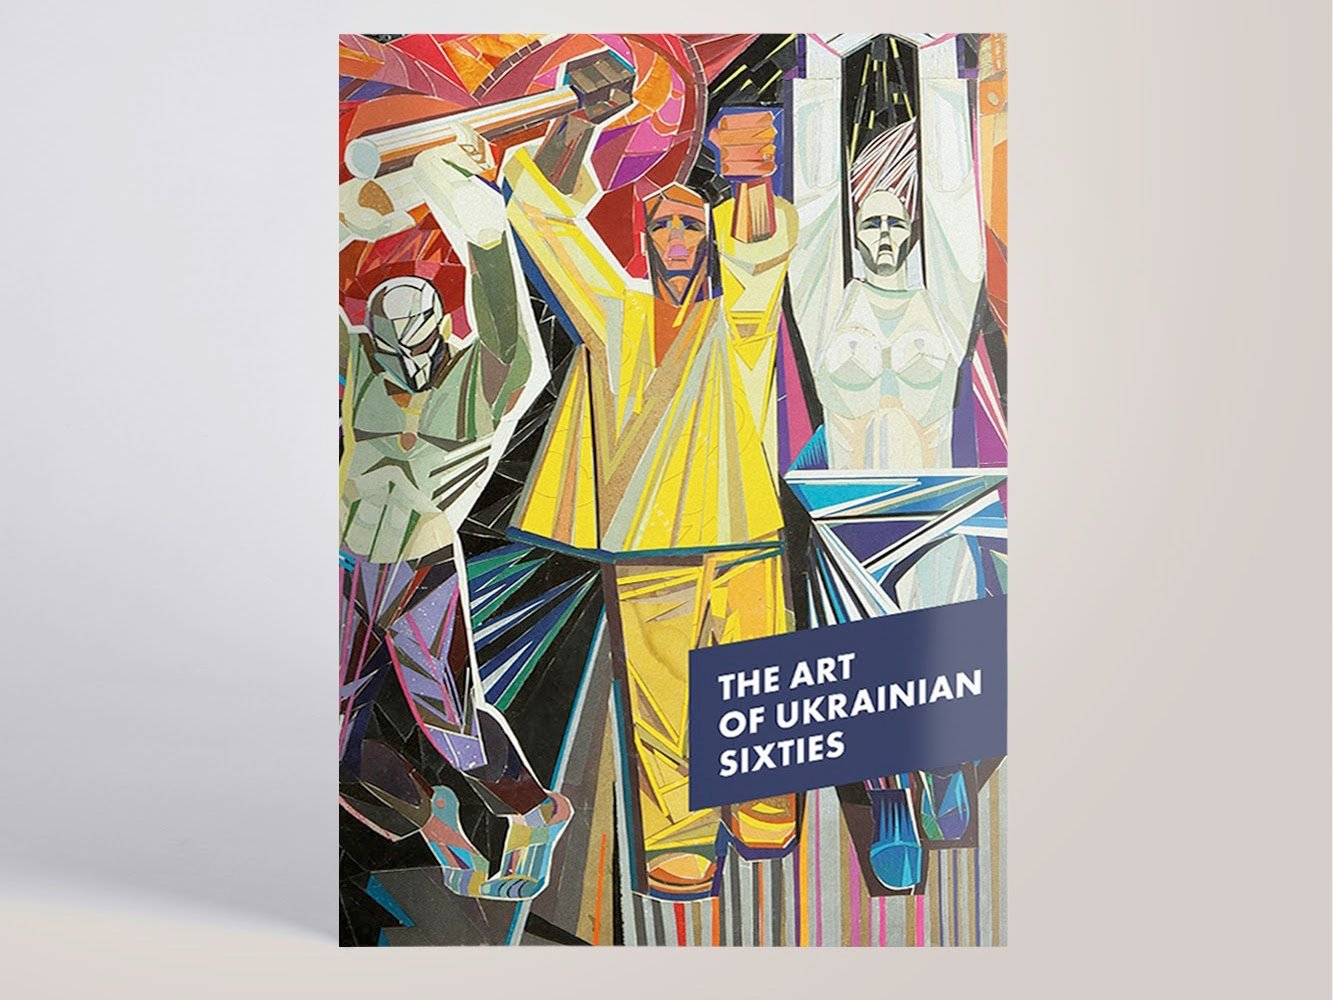 A new book celebrates the daring Ukrainian avant-garde art of the 1960s